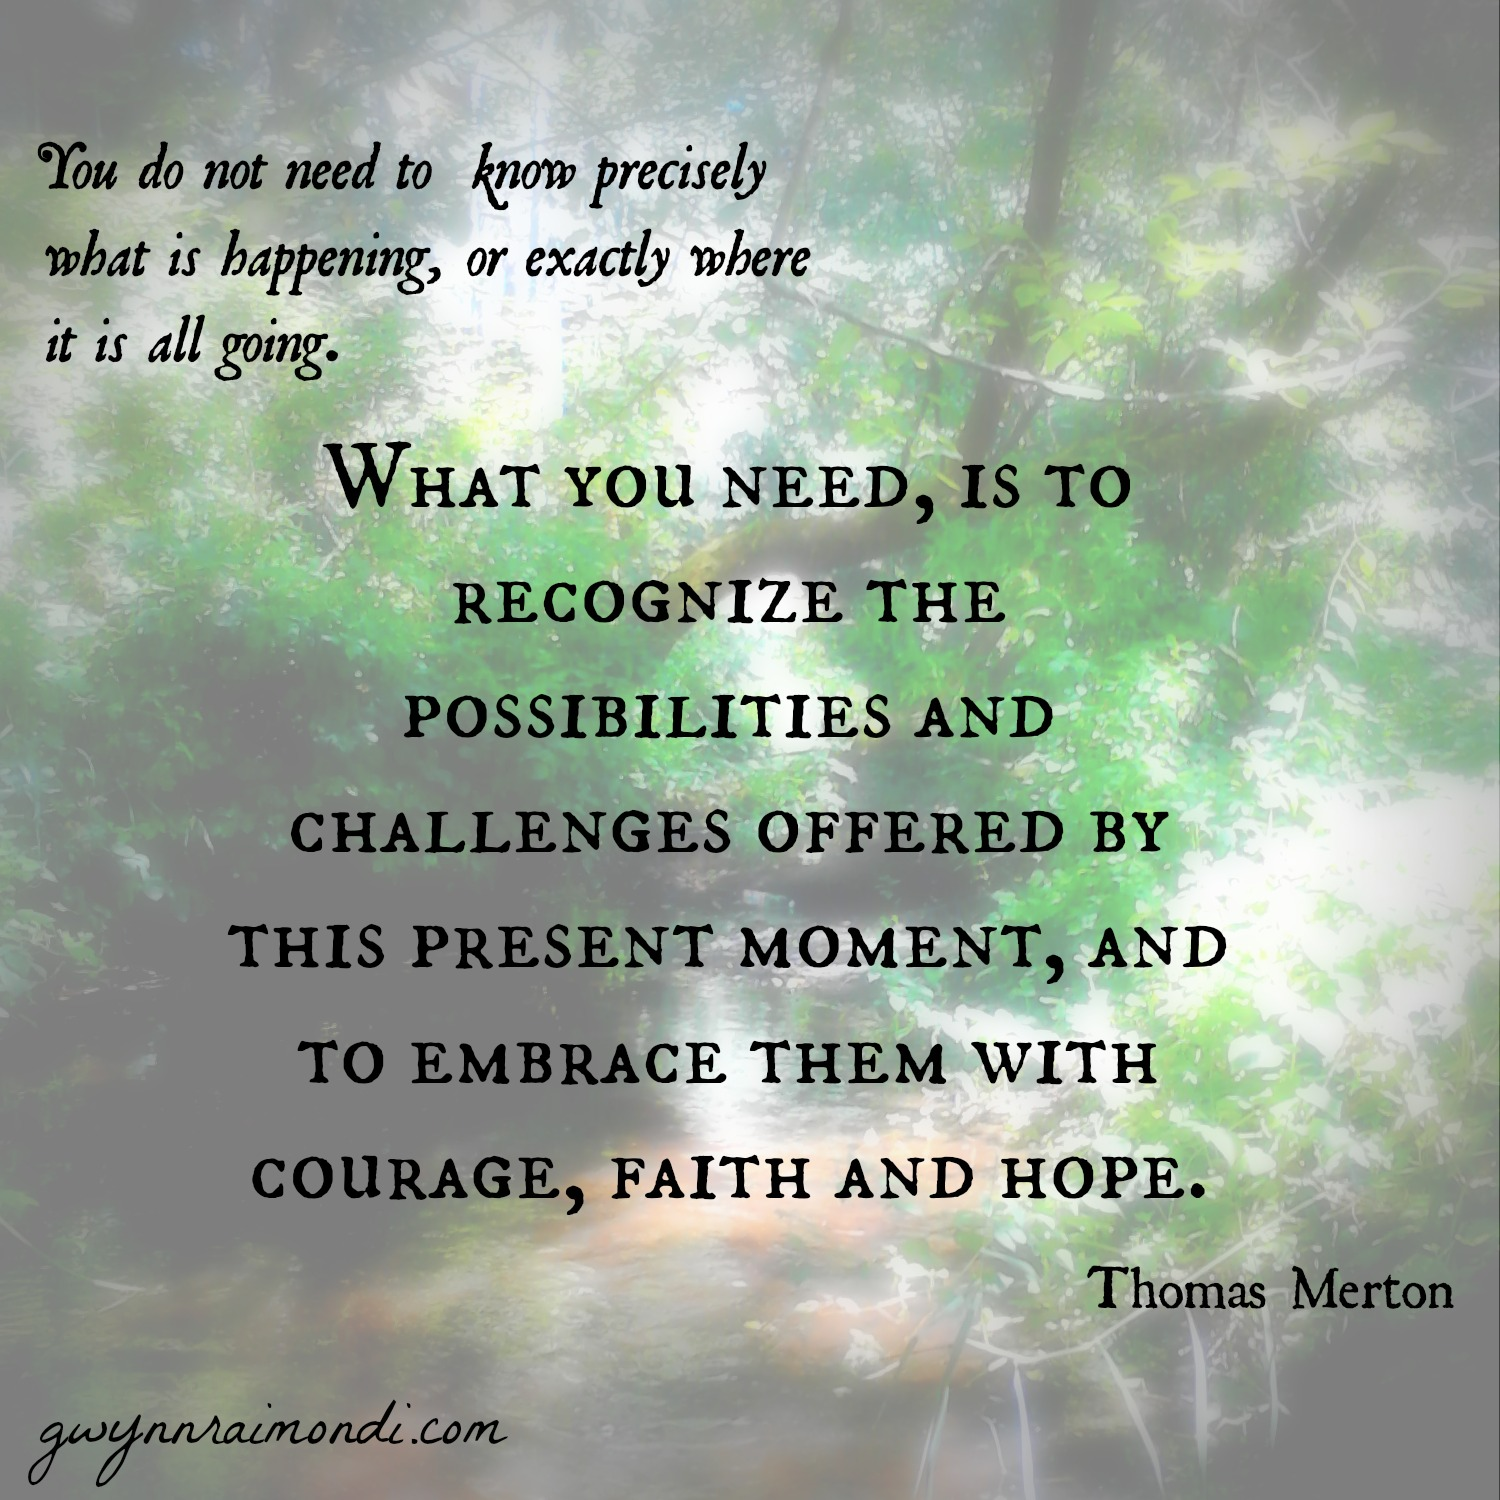 What you need Thomas Merton quote